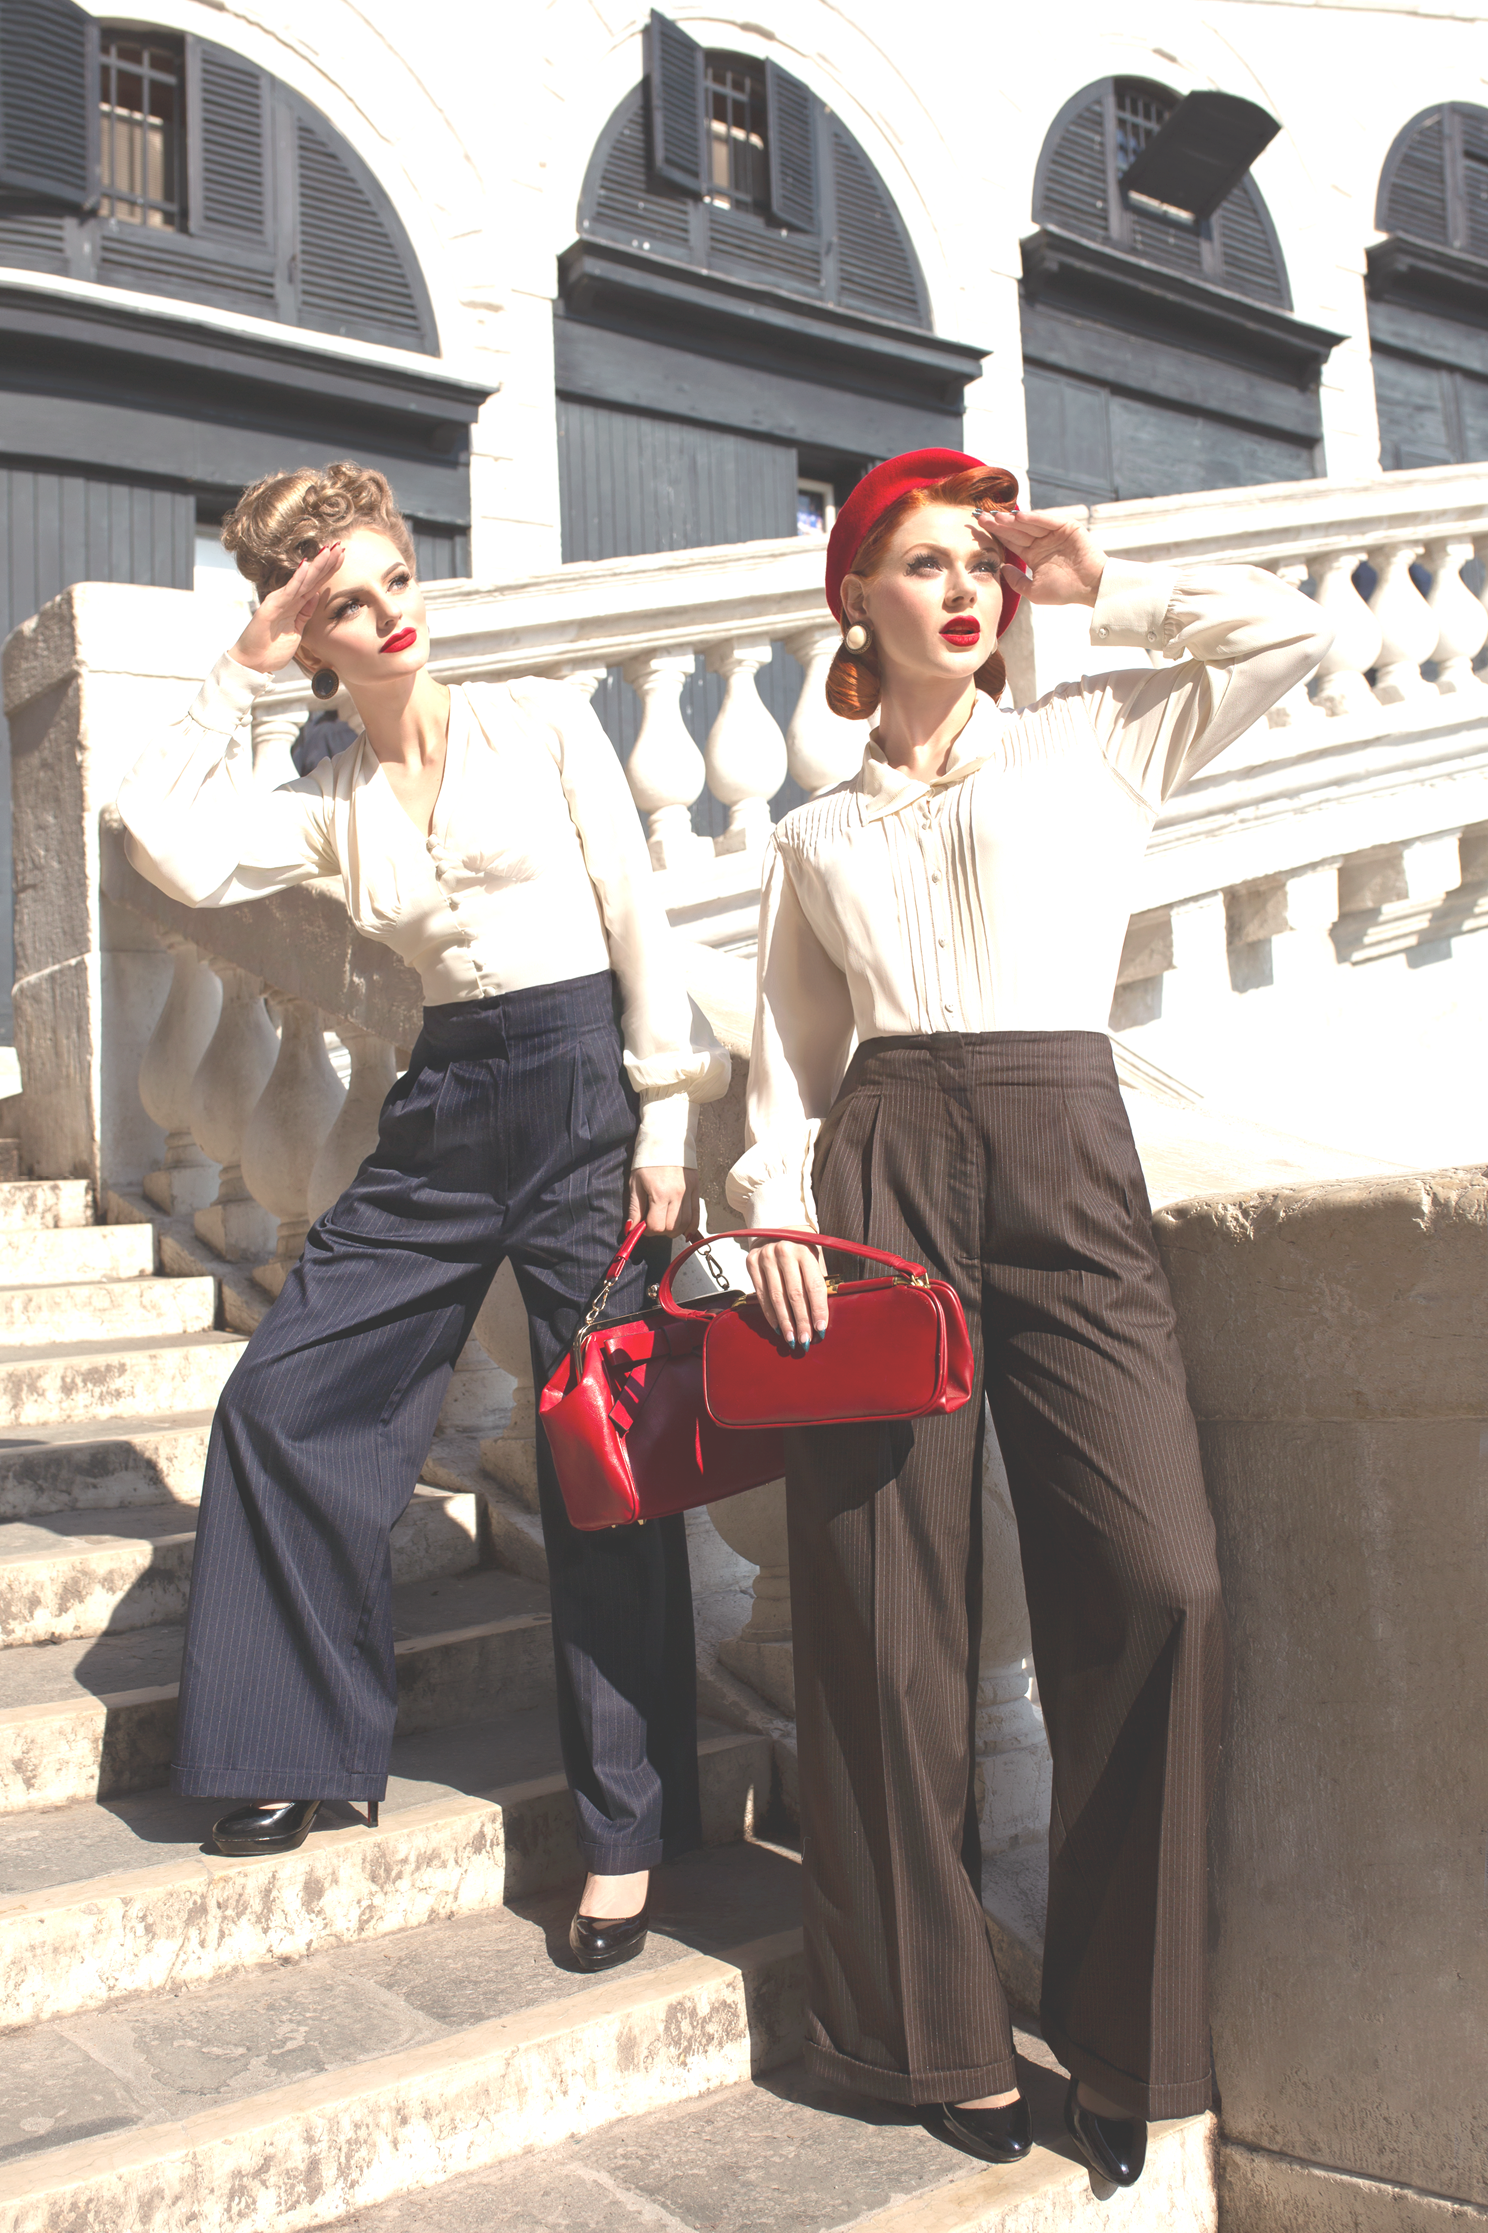 Vintage High Waisted Trousers, Sailor Pants, Jeans Audrey Tailored Trousers  in Solid Brown Perfectly Authentic 1940s Vintage Inspired Style £60.01 AT vintagedancer.com